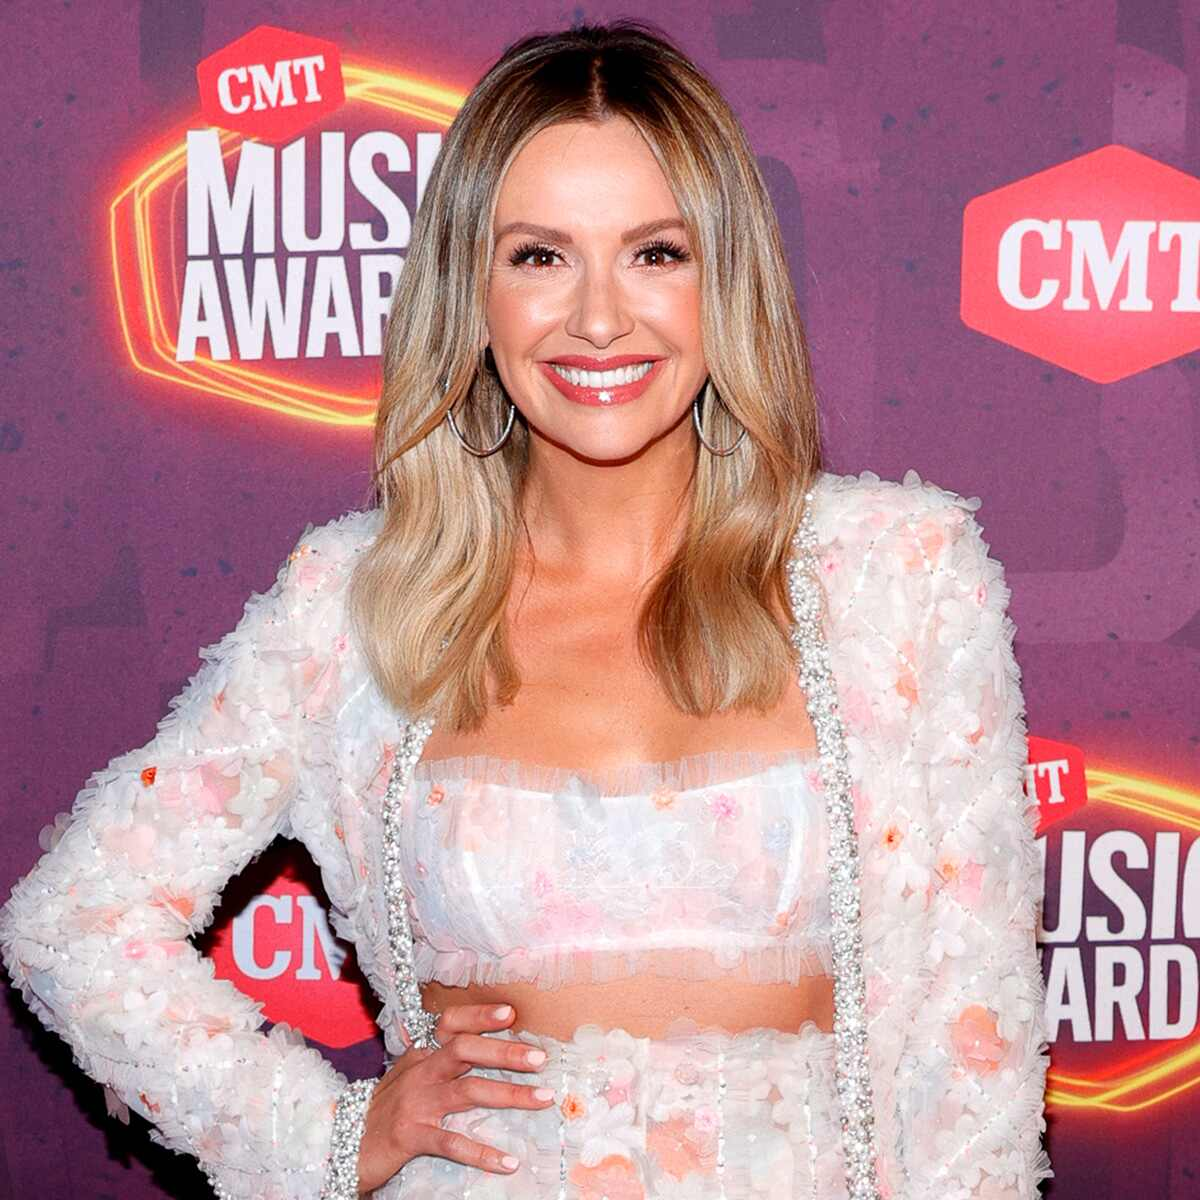 Carly Pearce, 2021 CMT Music Awards, Red Carpet Fashion